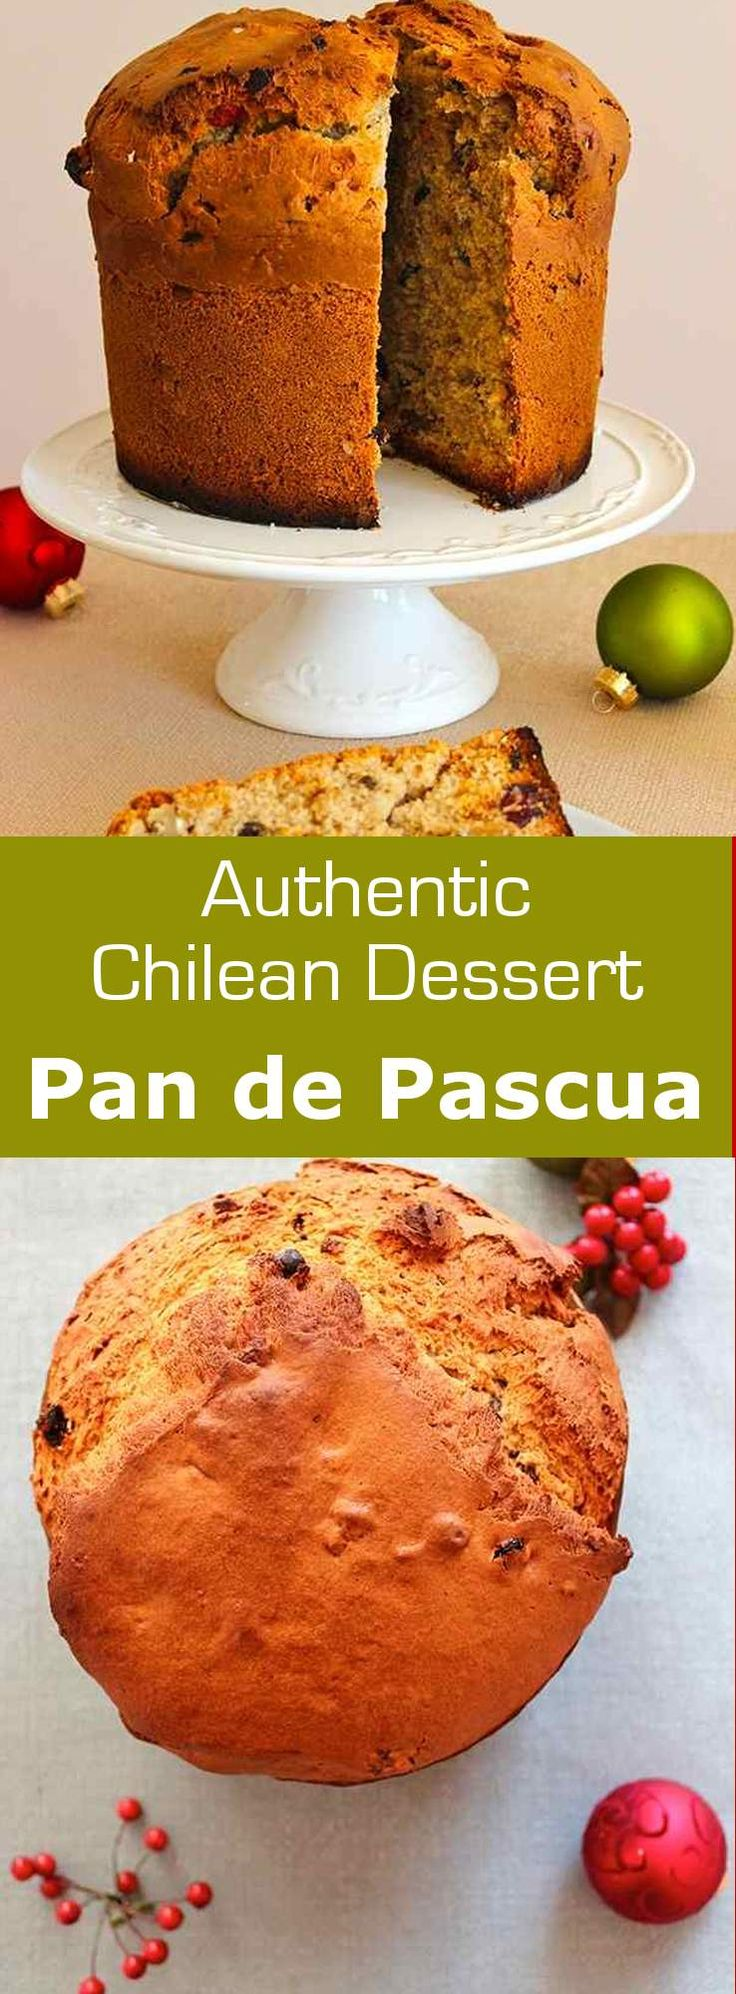 Pan de Pascua is a Chilean spiced cake with dried fruits and nuts that is…